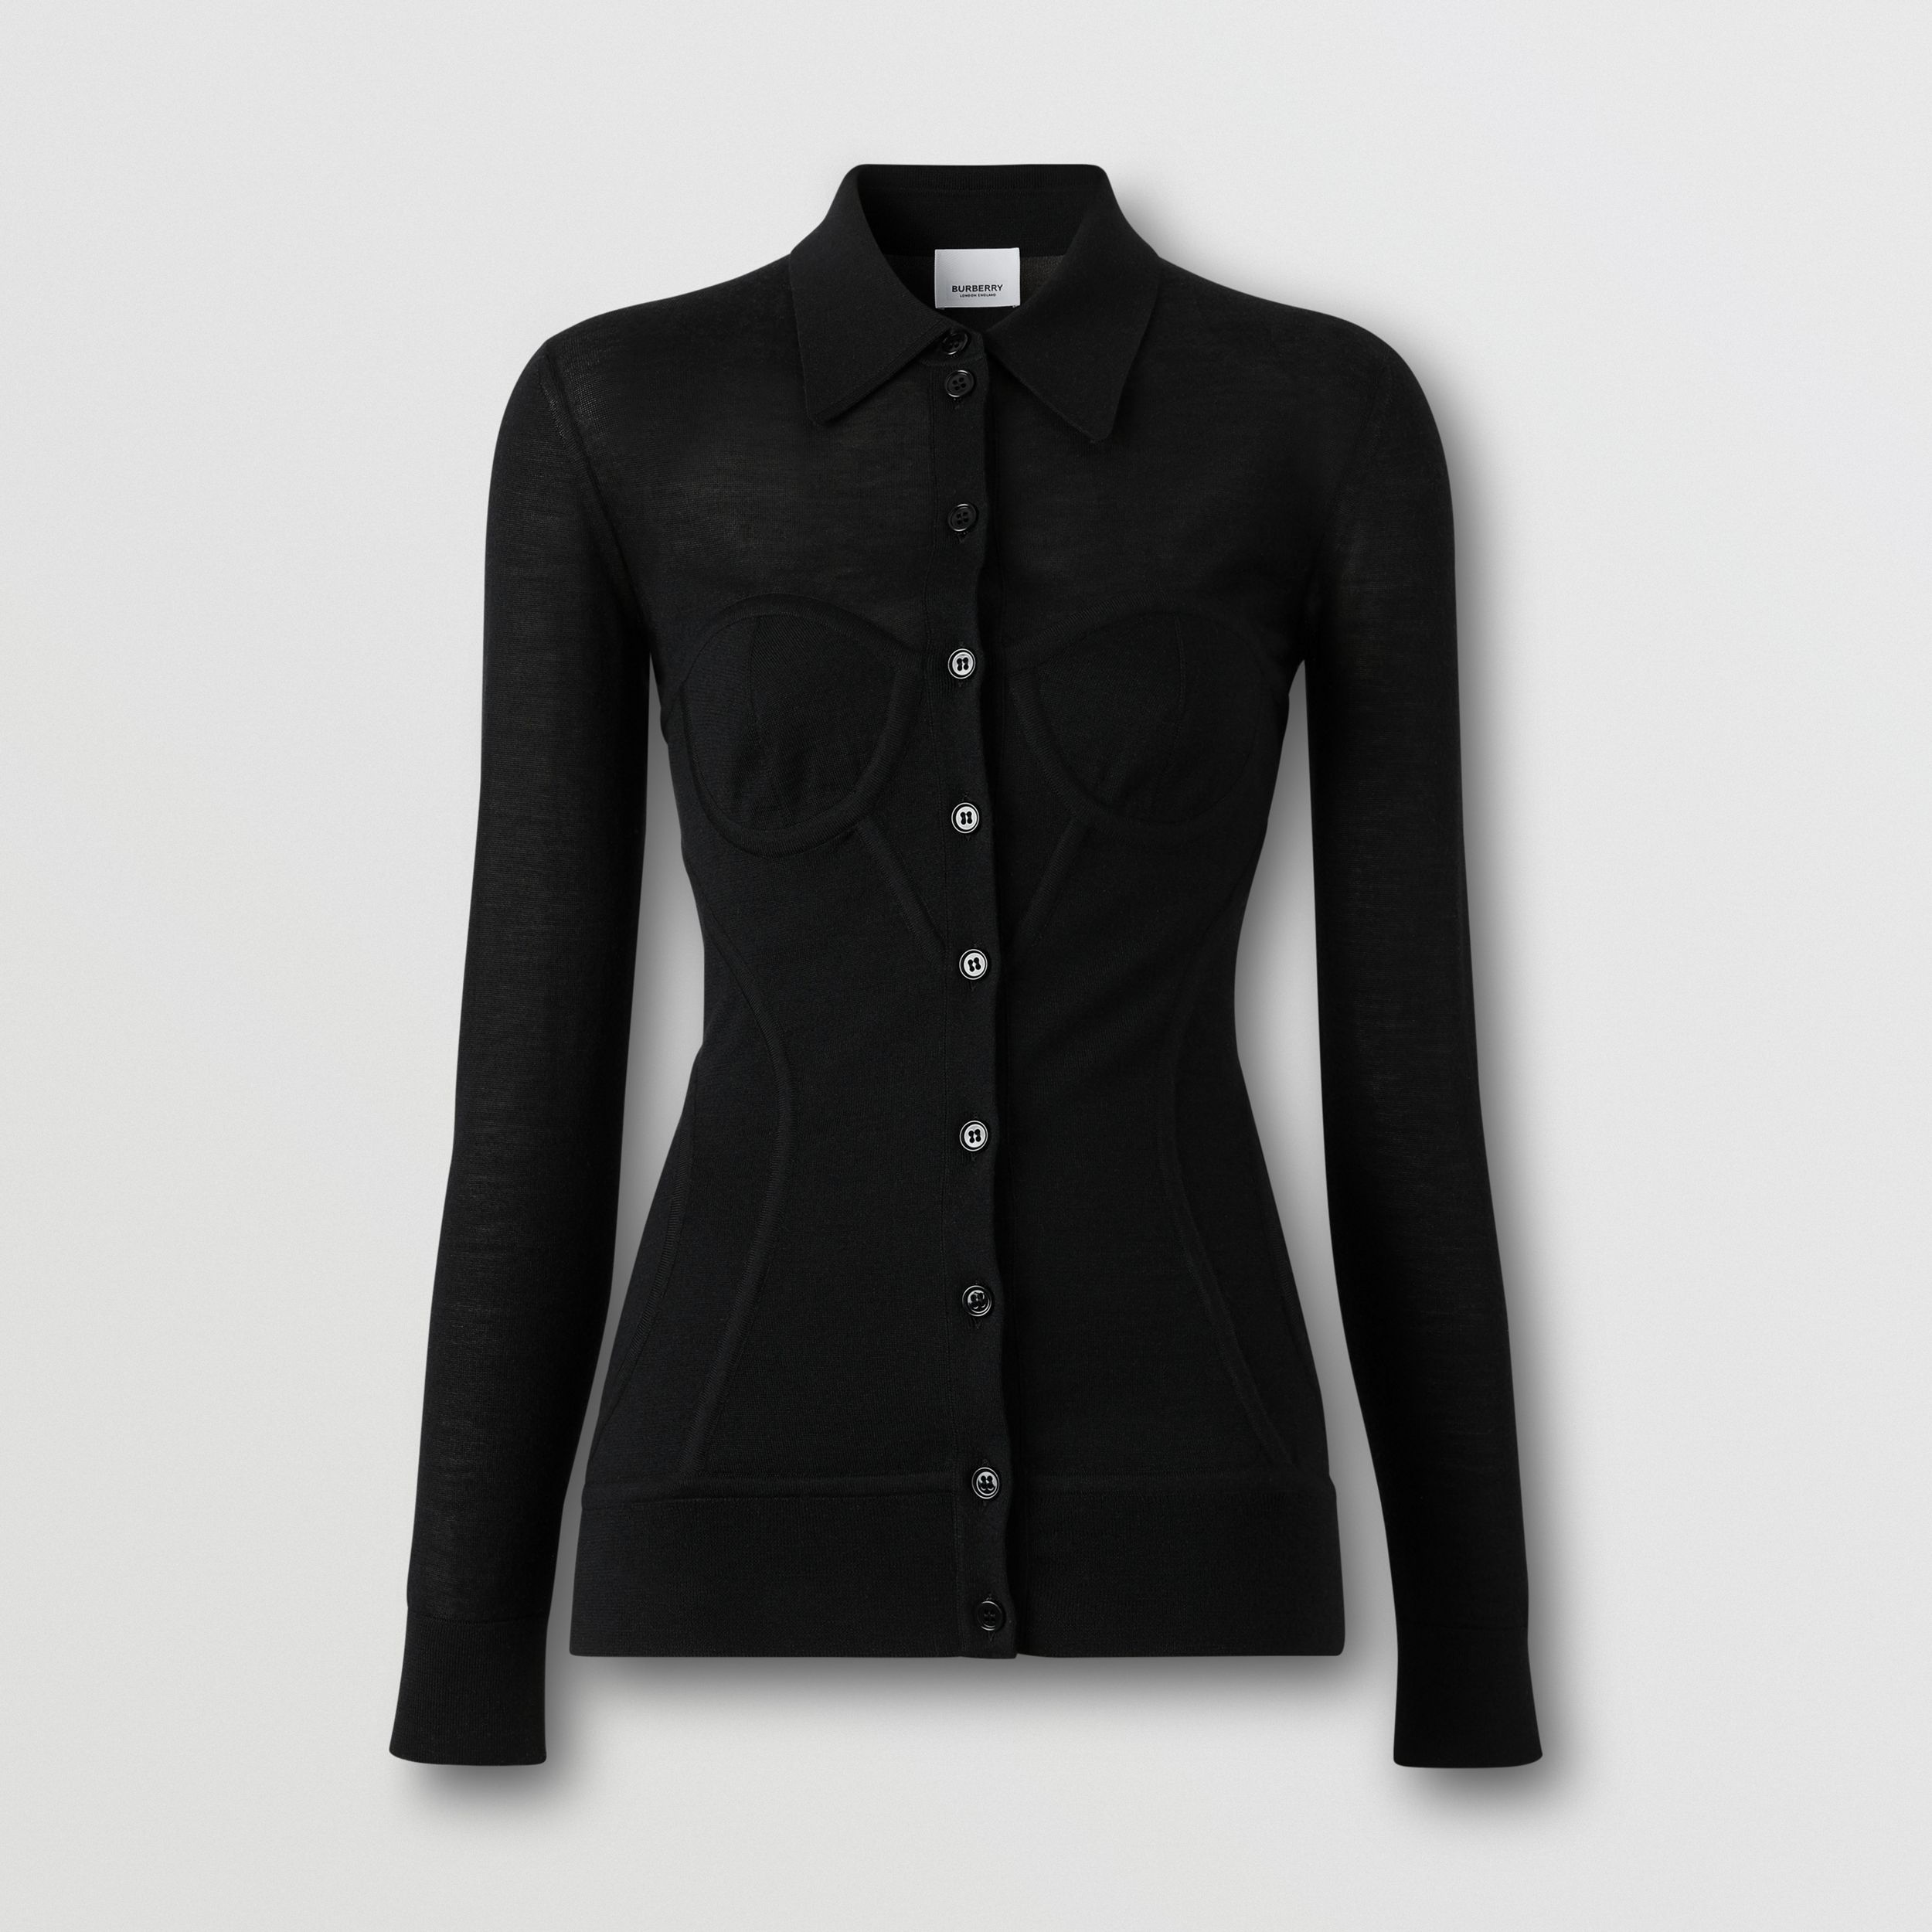 Corset Detail Knit Cashmere Silk Cardigan in Black - Women | Burberry - 4